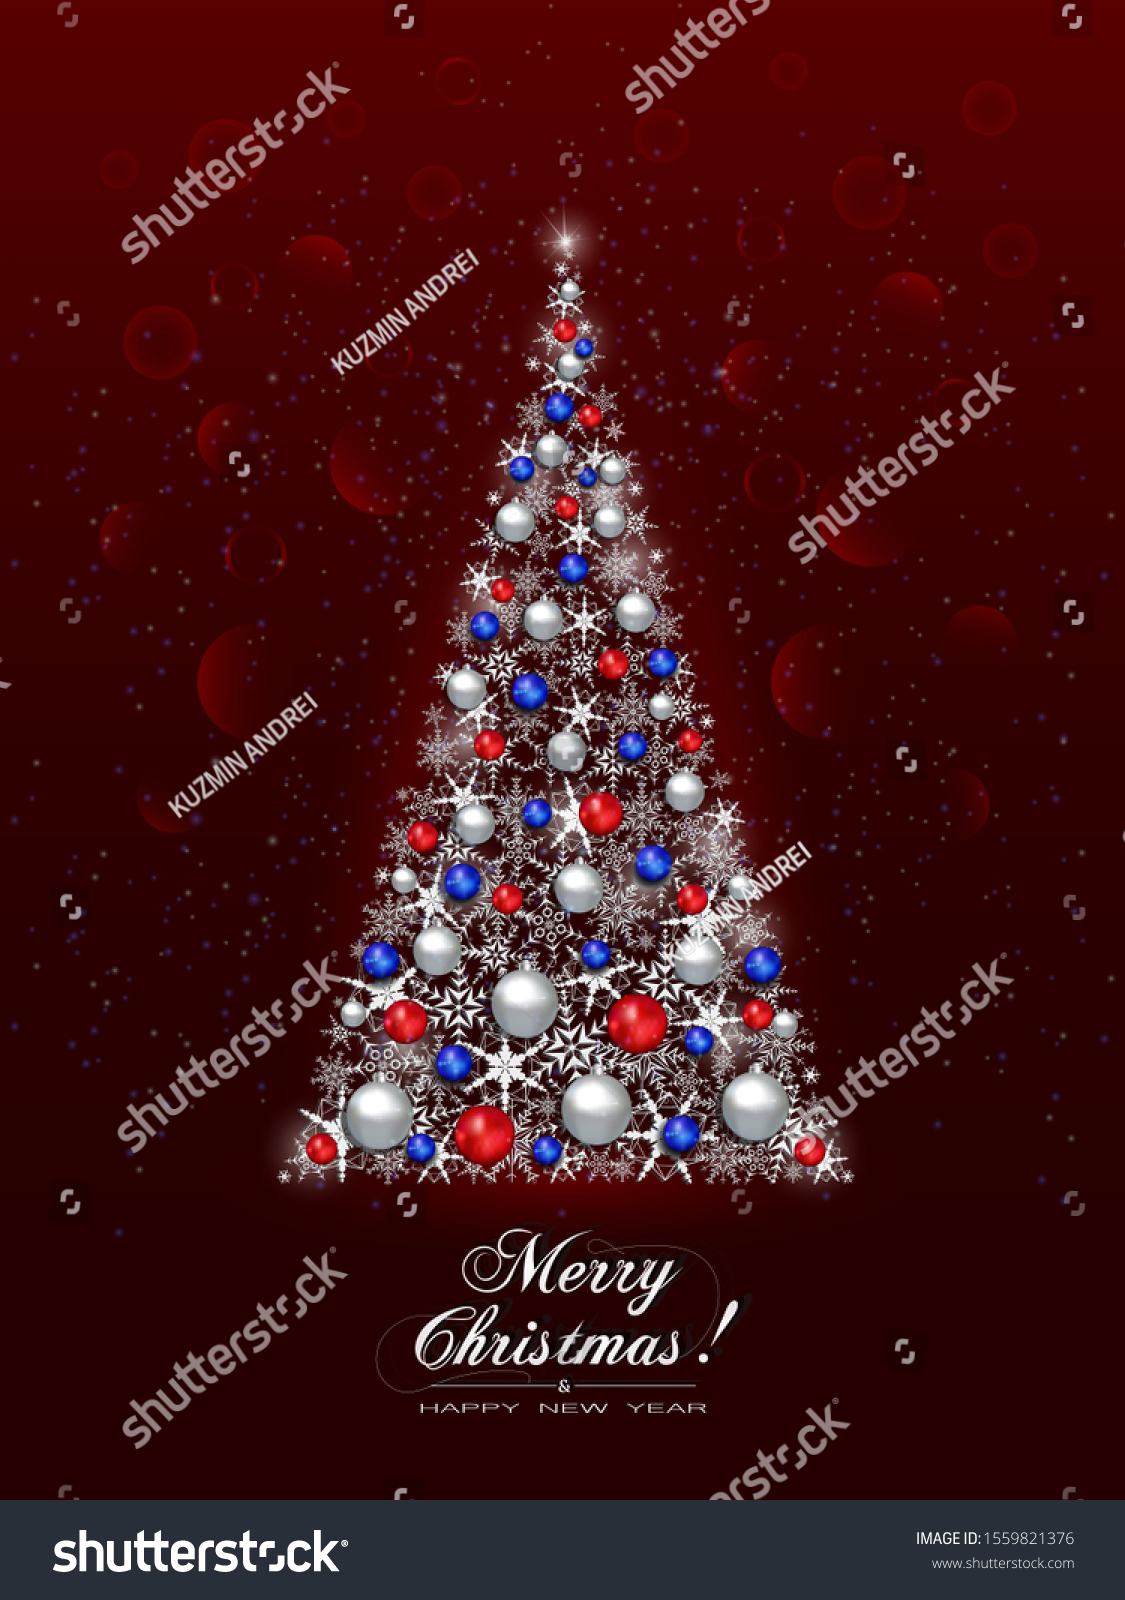 Abstract Christmas Tree White Snowflakes Decorated Stock Vector Royalty Free 1559821376